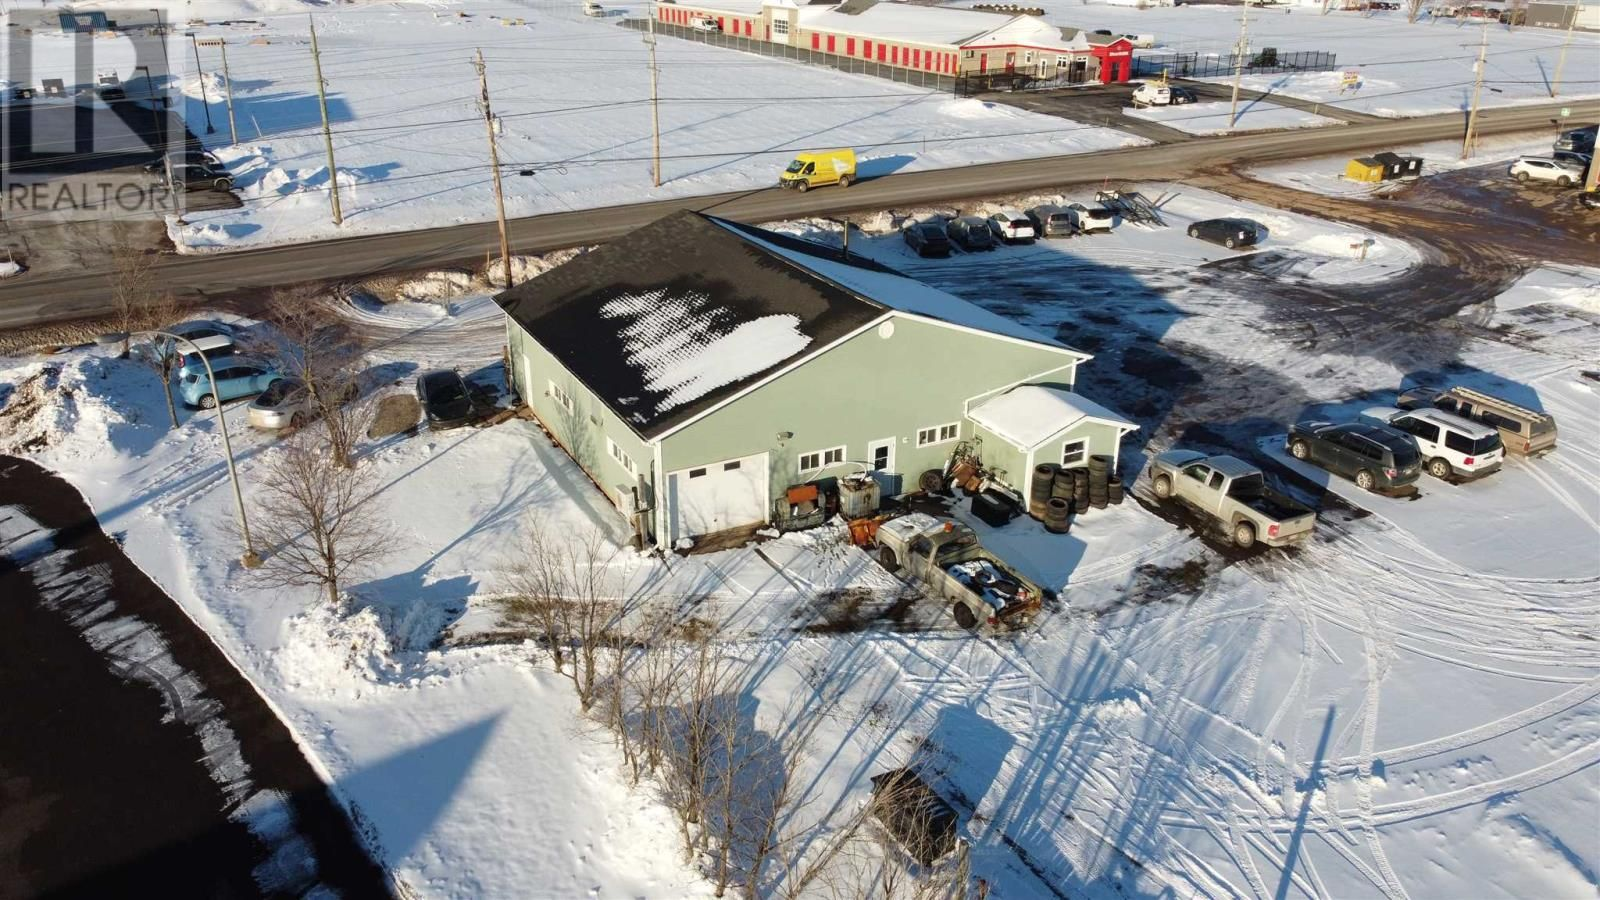 Main Photo: 1 MacNeil Drive in Charlottetown: Other for sale : MLS®# 202022550